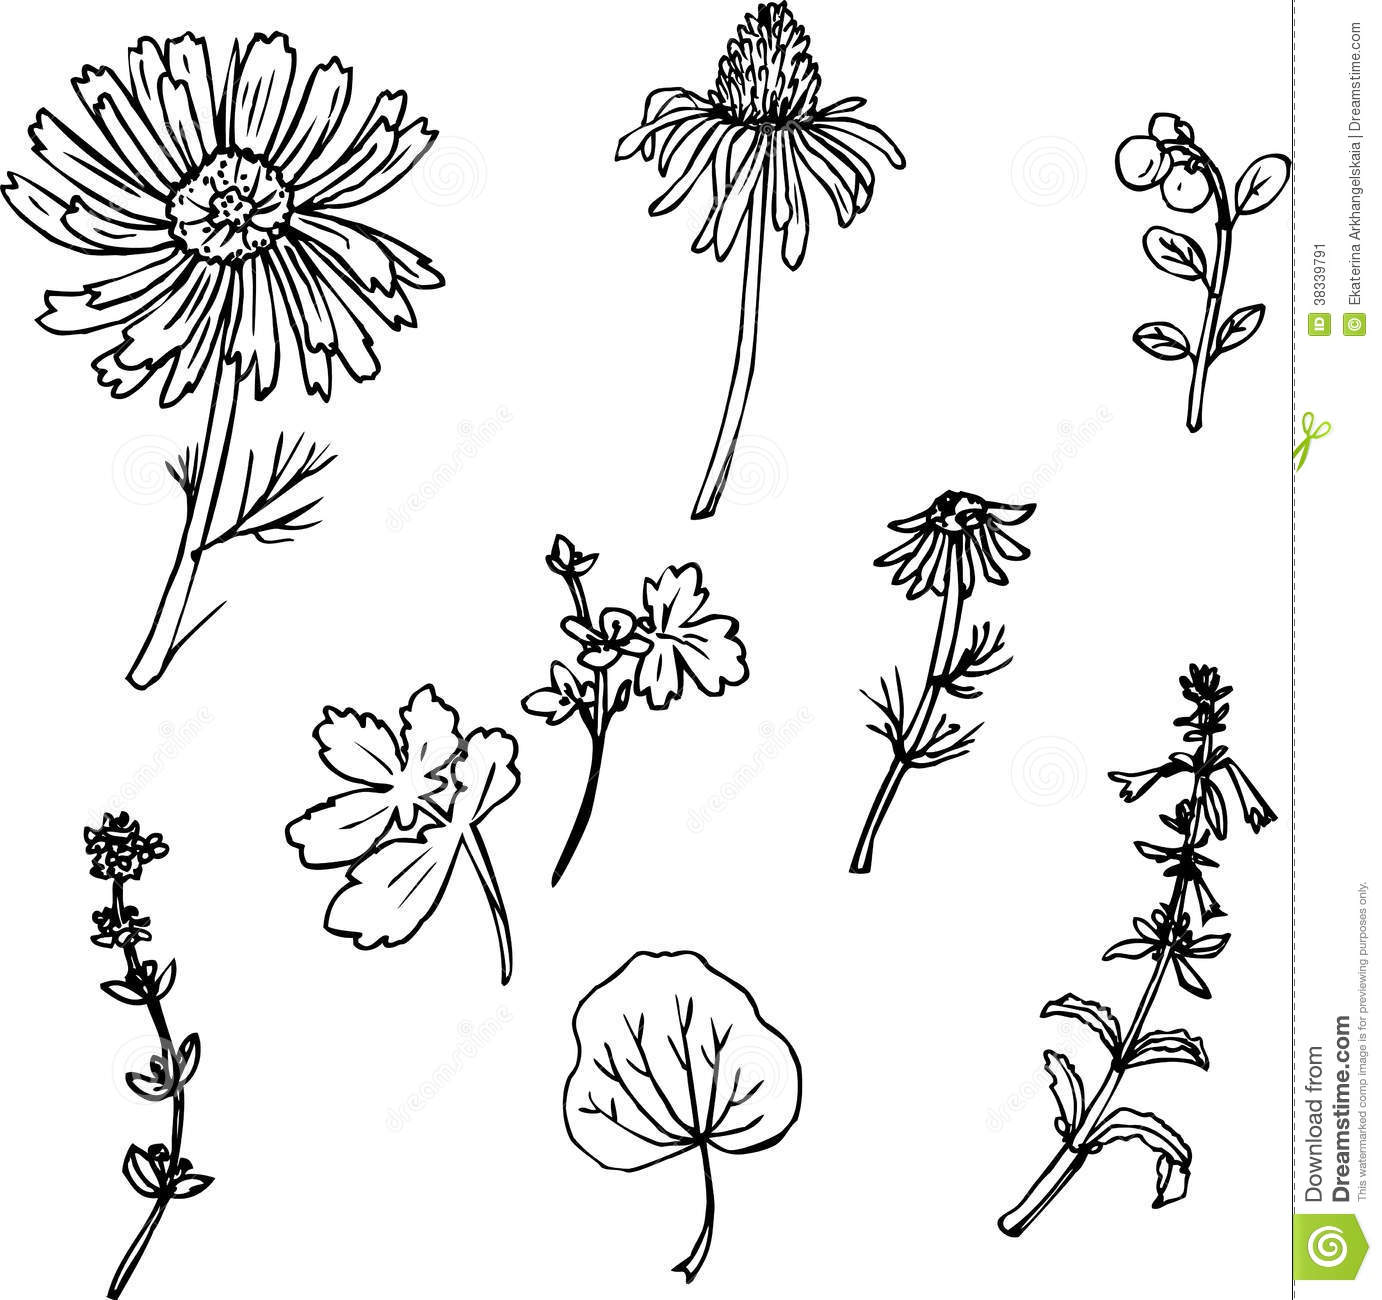 Line Art Illustration : Set of line drawing herbs stock vector illustration